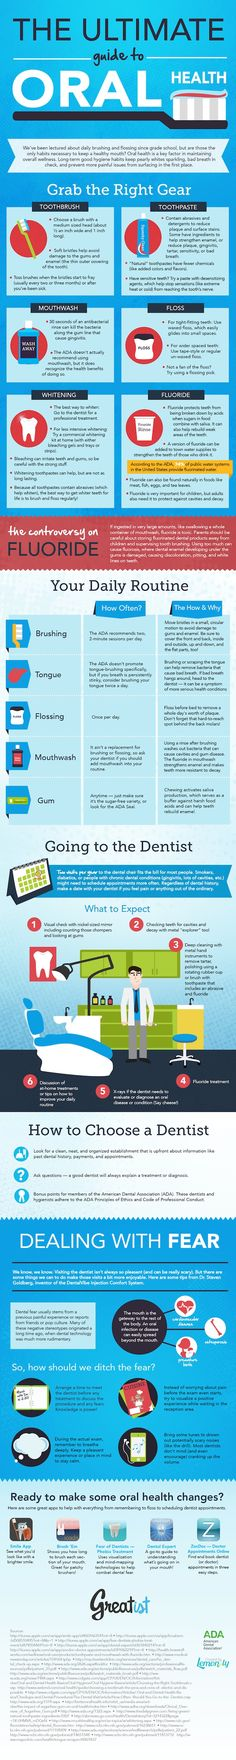 Great #dental #health infographic - The Ultimate Guide to Oral Health